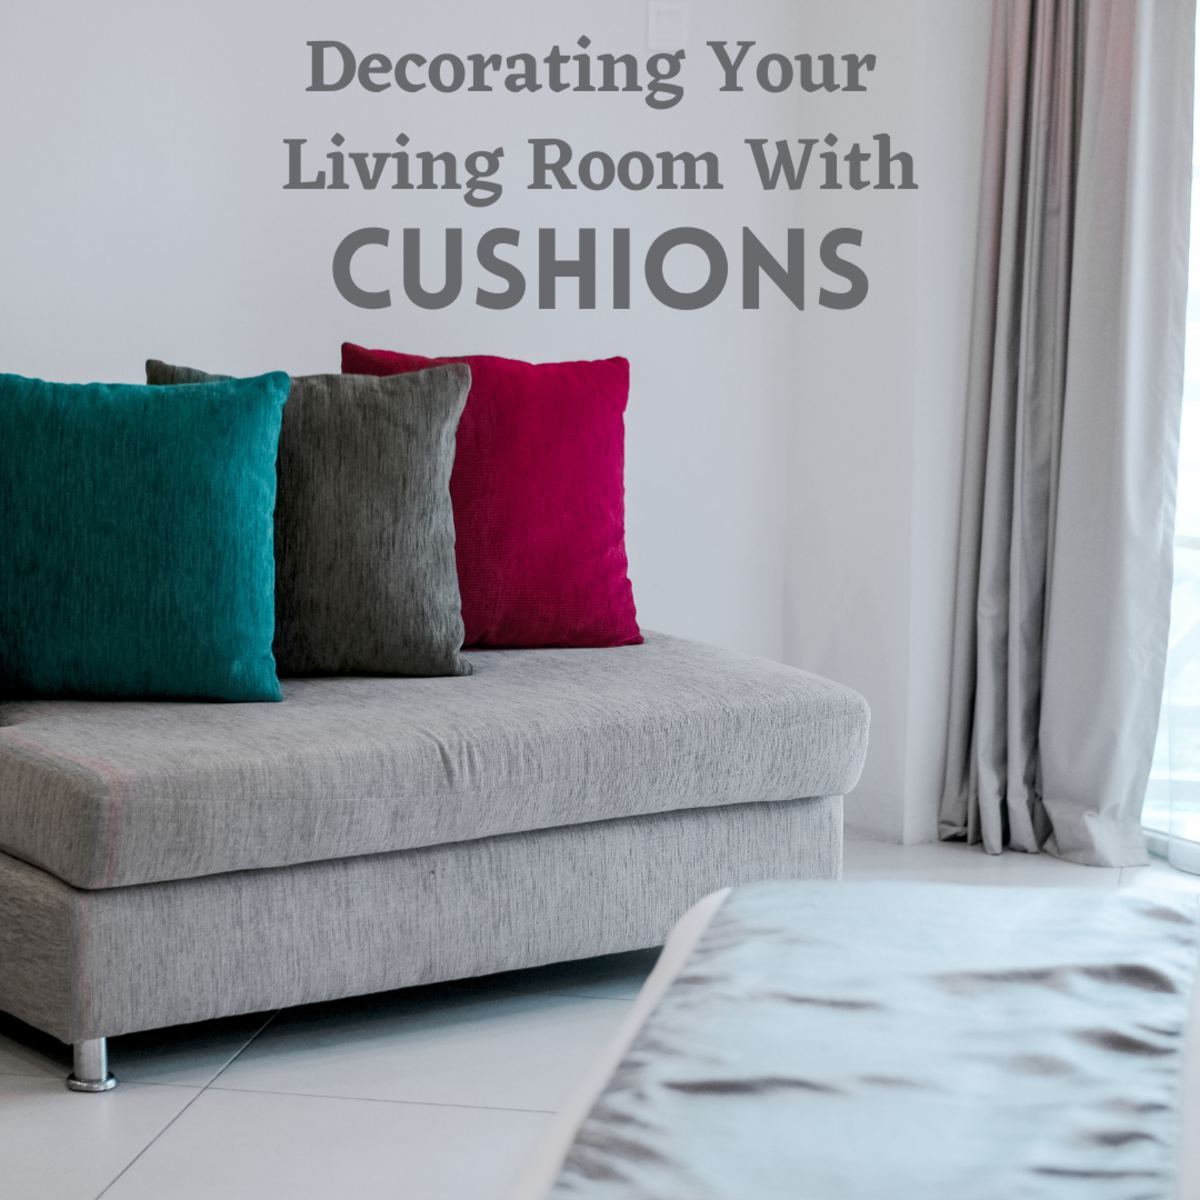 Cushions can really transform your living room—here's how!